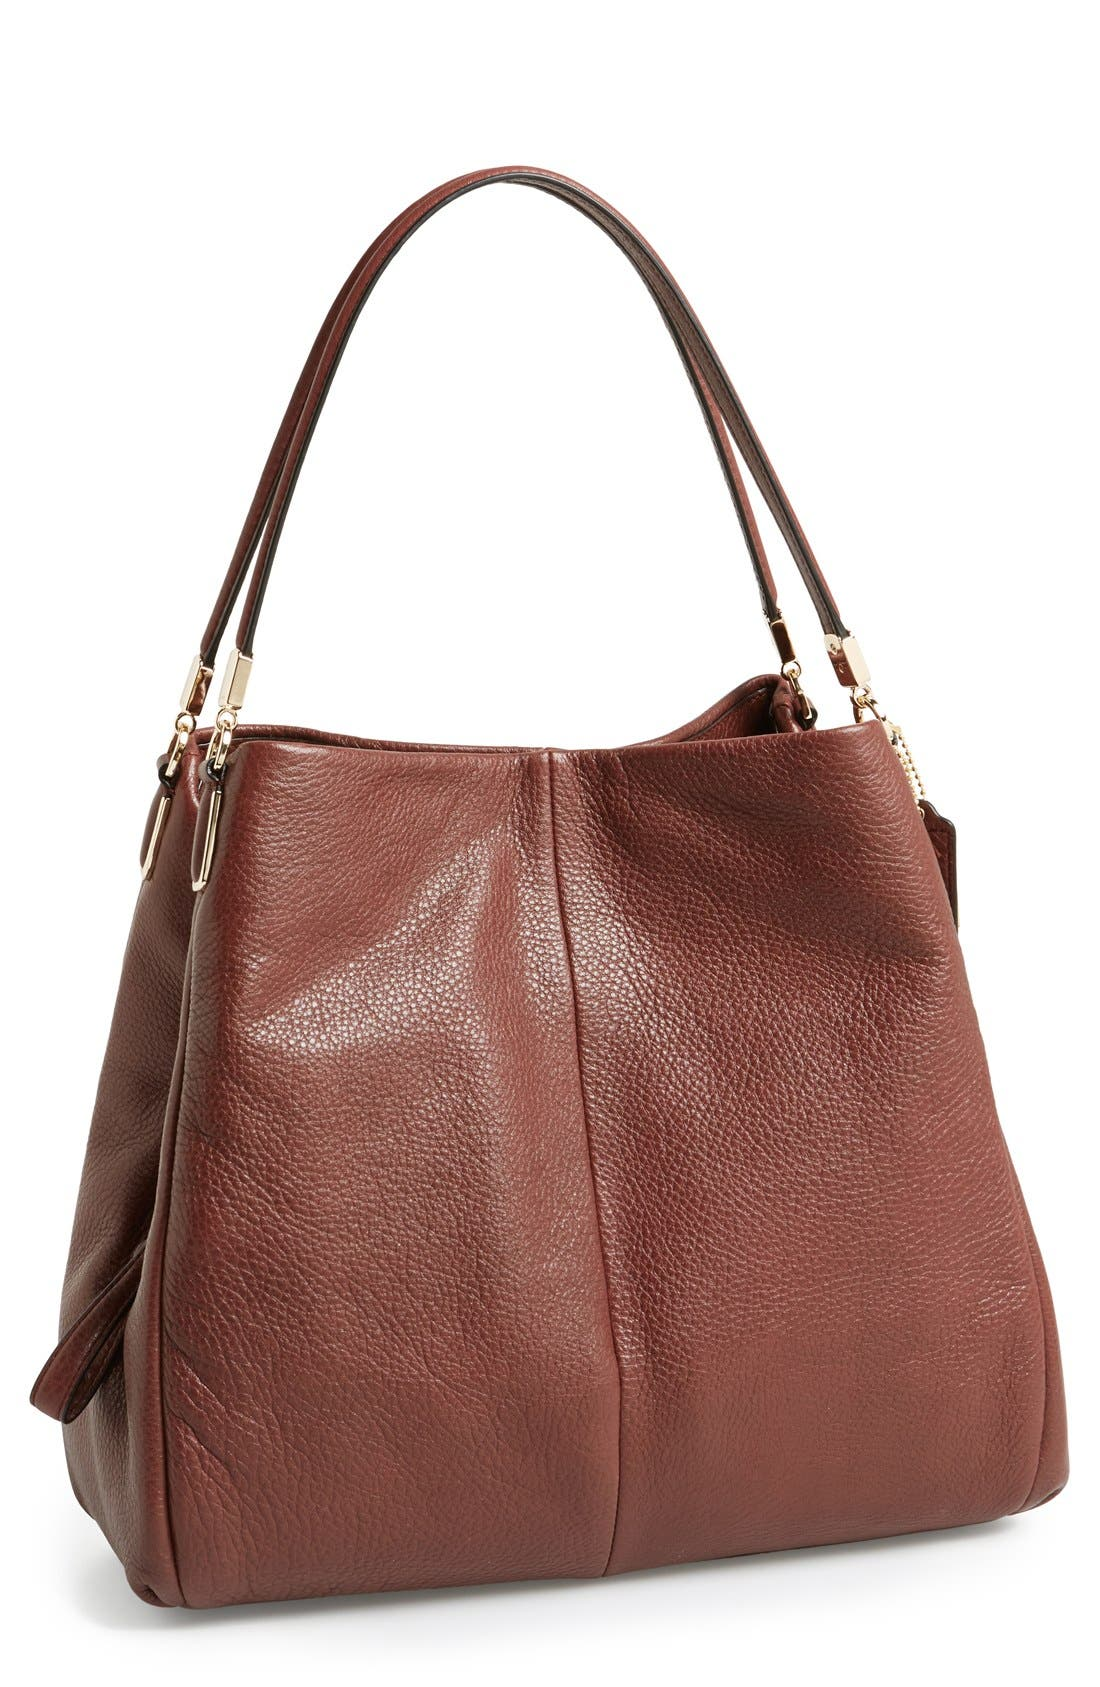 Main Image - COACH 'Small Madison Phoebe' Leather Shoulder Bag